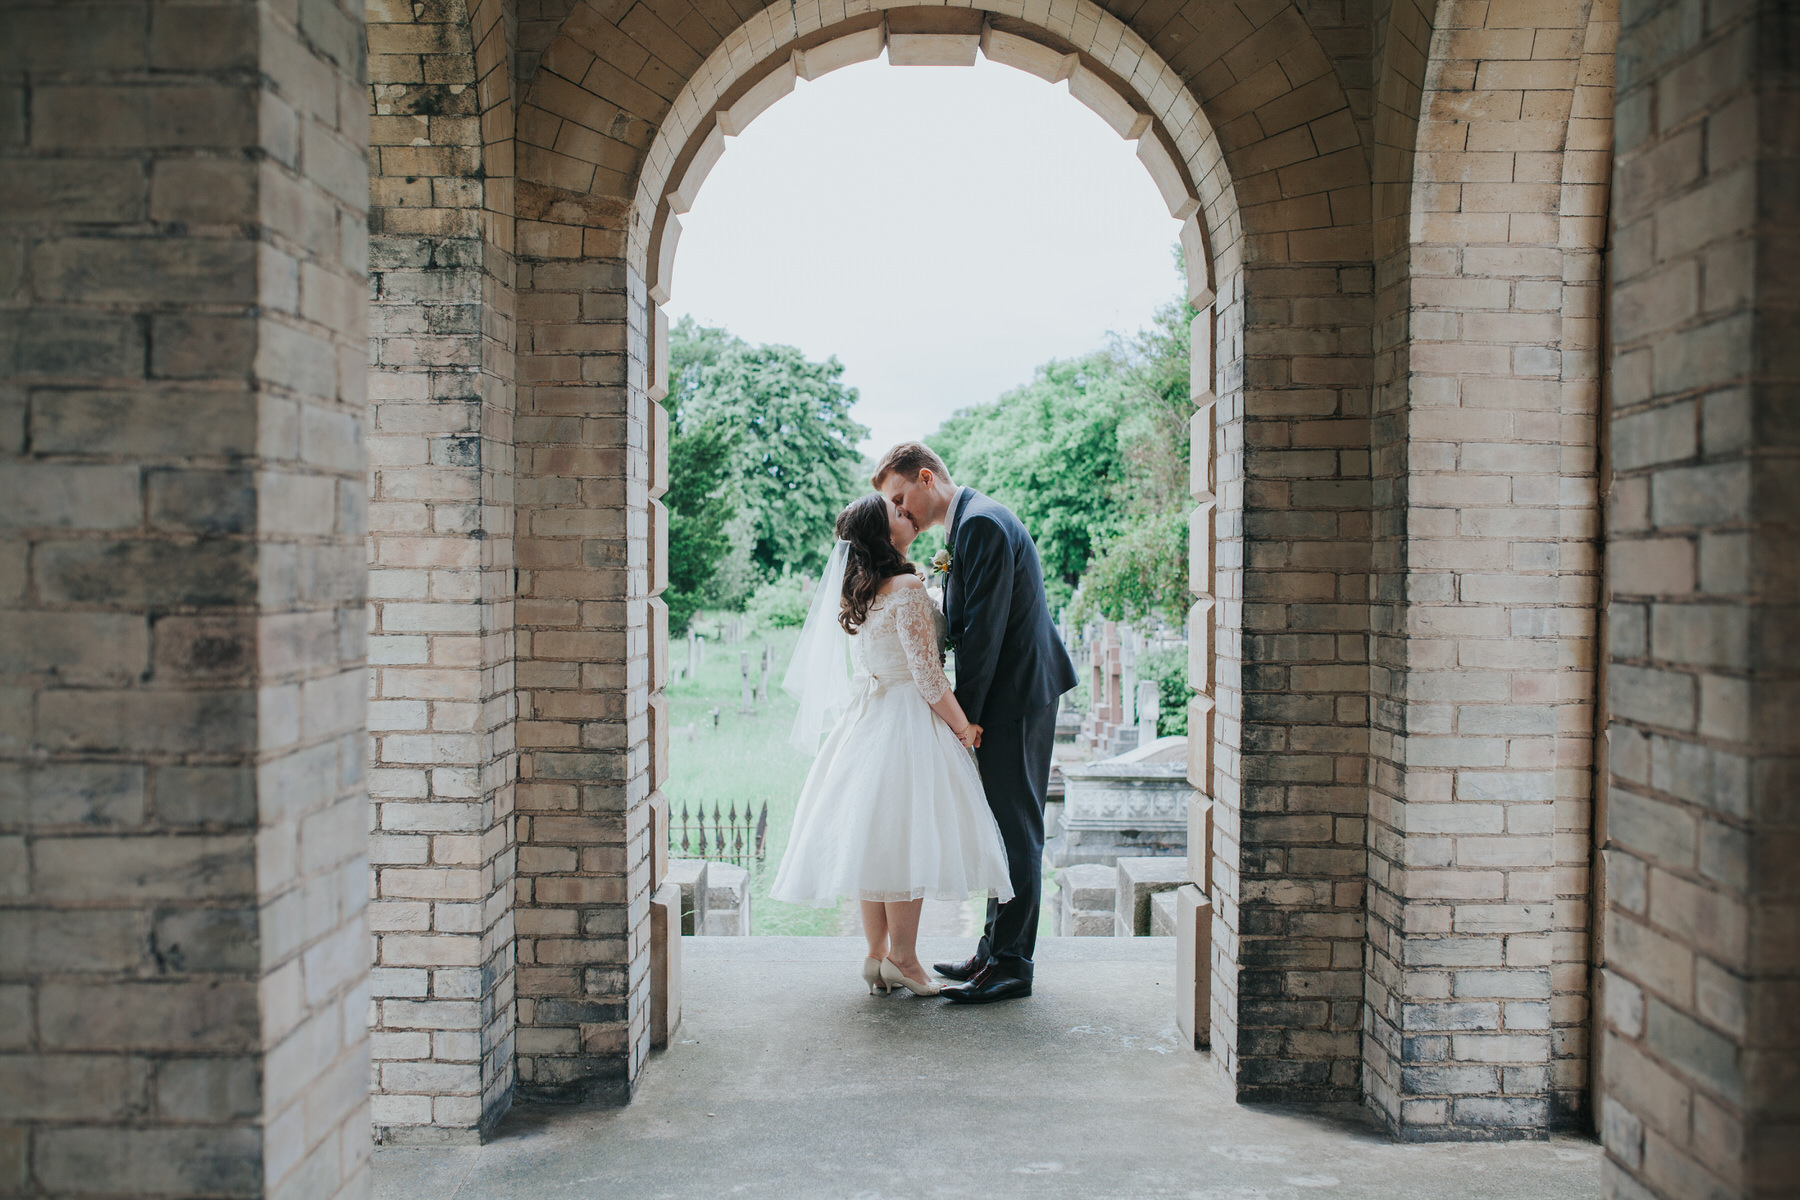 125-groom bride wedding portraits Brompton Cemetery_.jpg